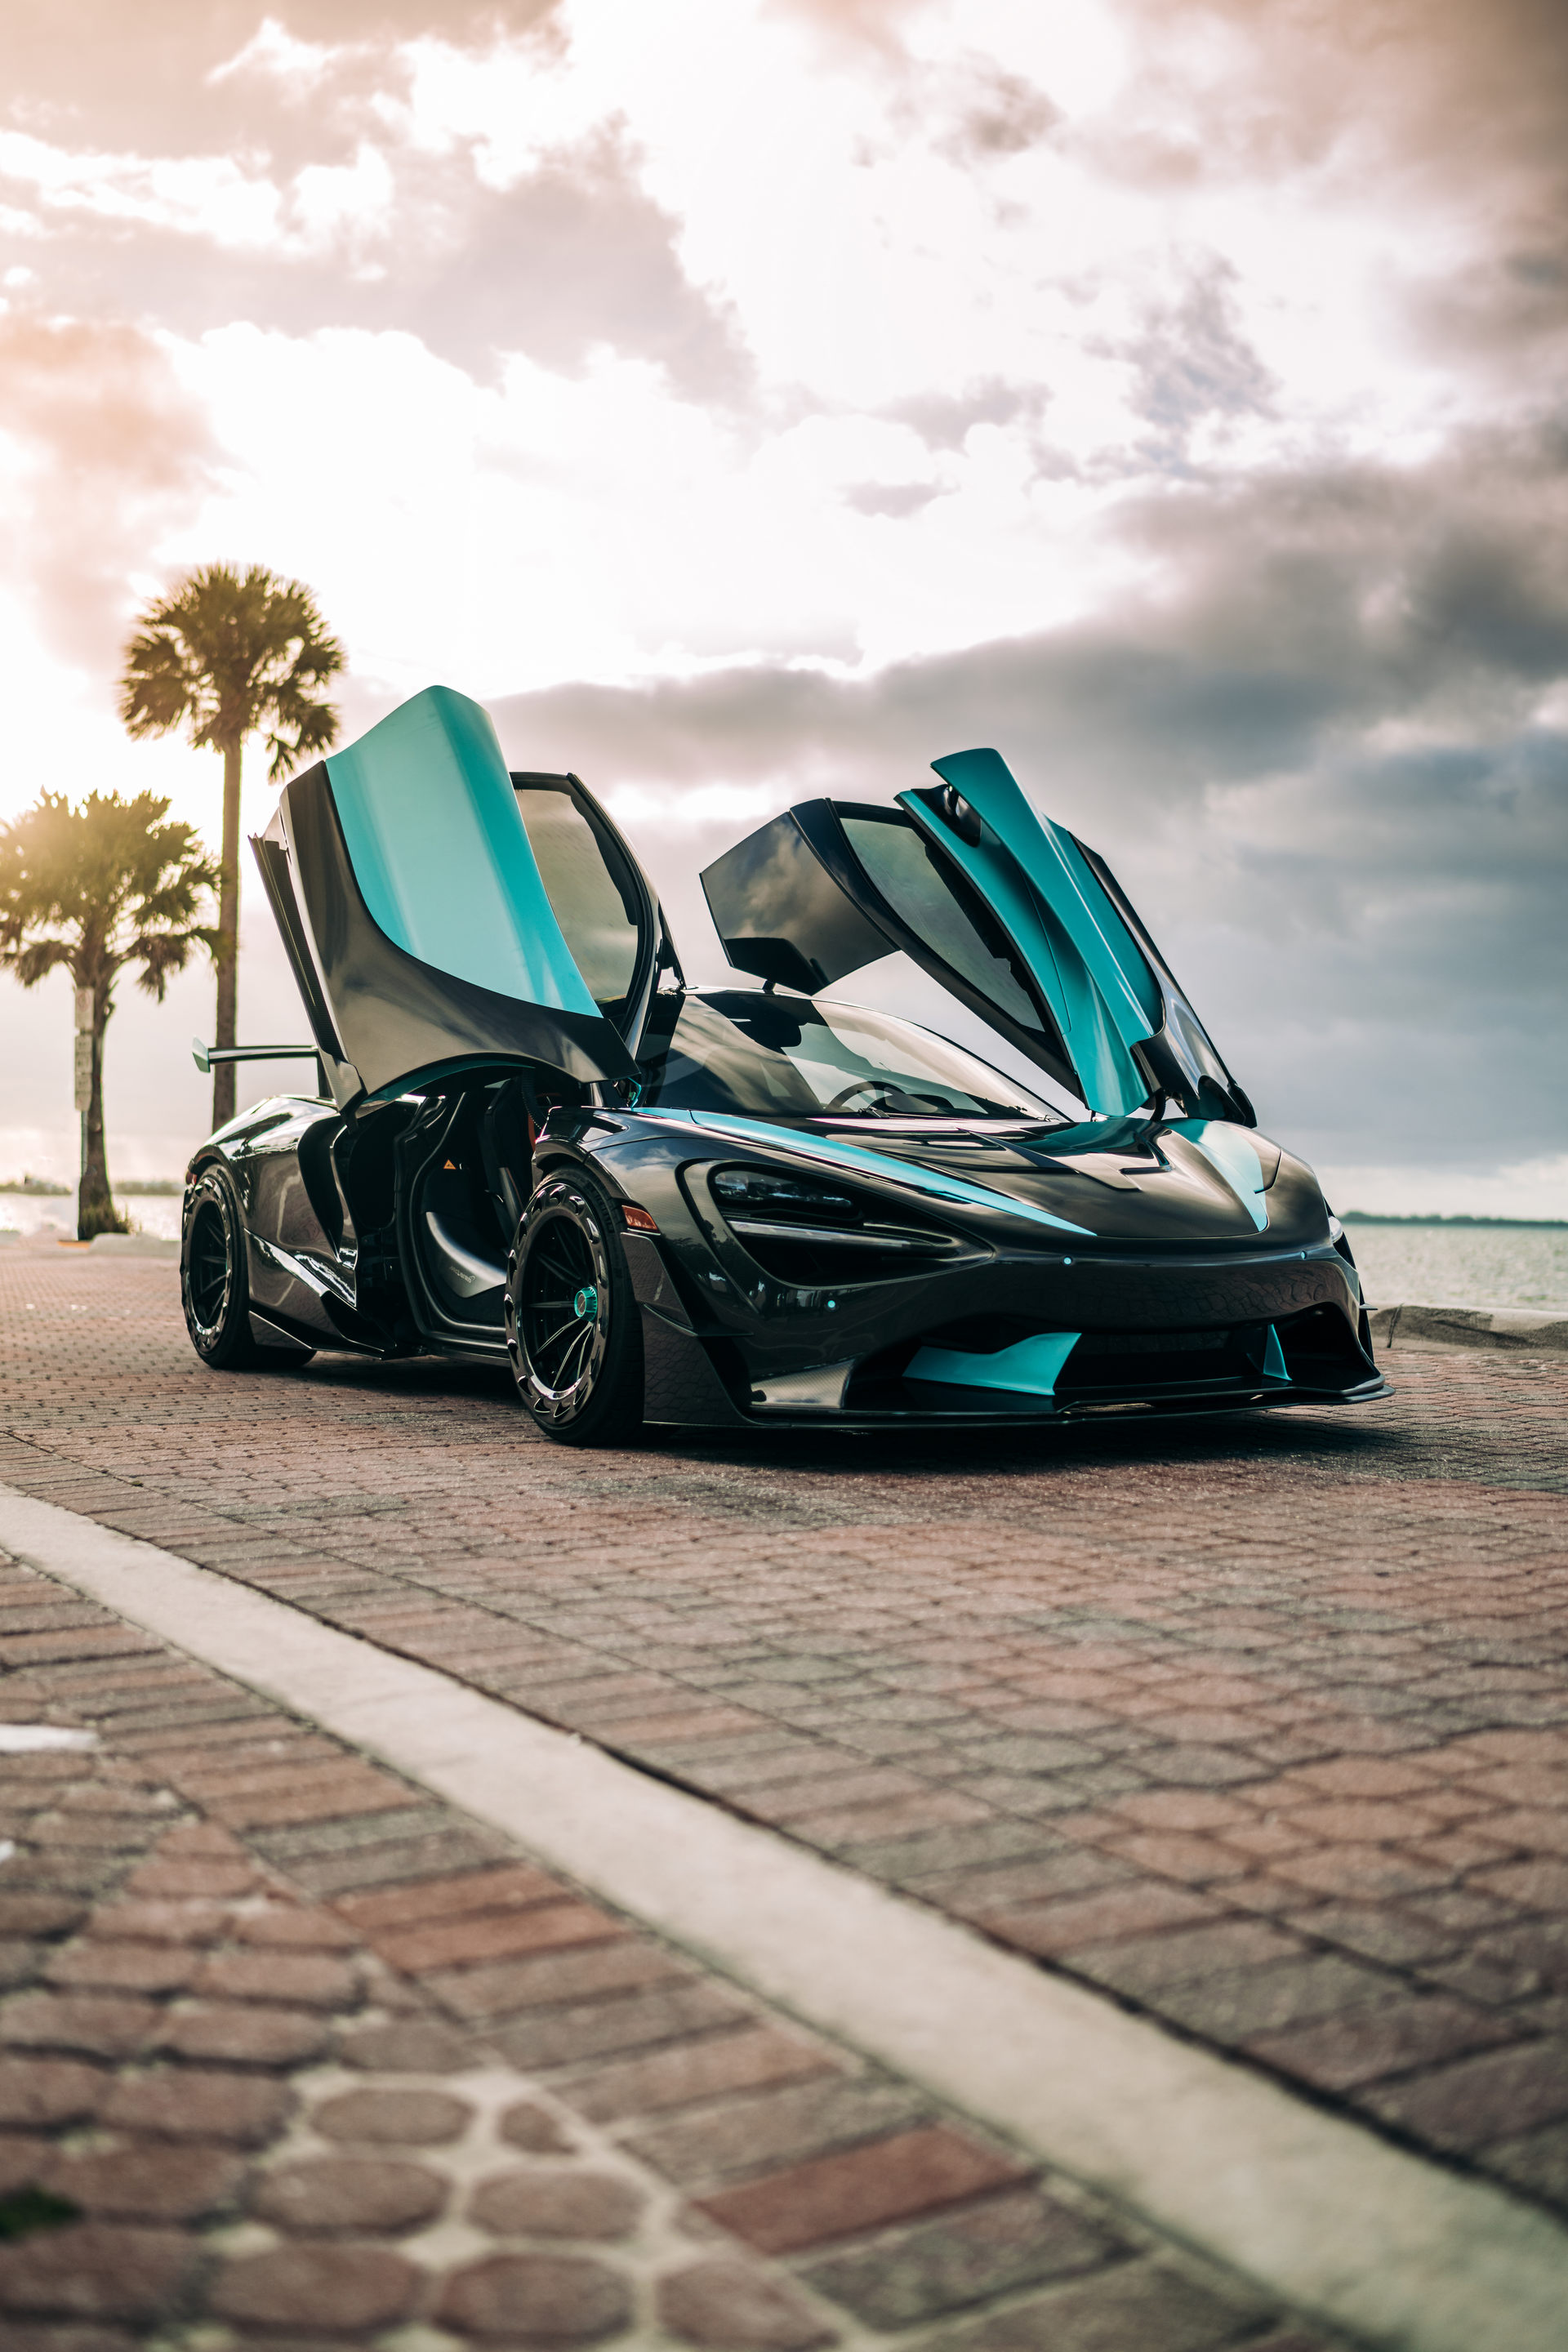 1016 Industries has been looking into mass-producing 3D printed carbon fiber parts for supercars for a long time, and has now proudly introduced its first completed project, a McLaren 720S aero kit named '000' for being a prototype.